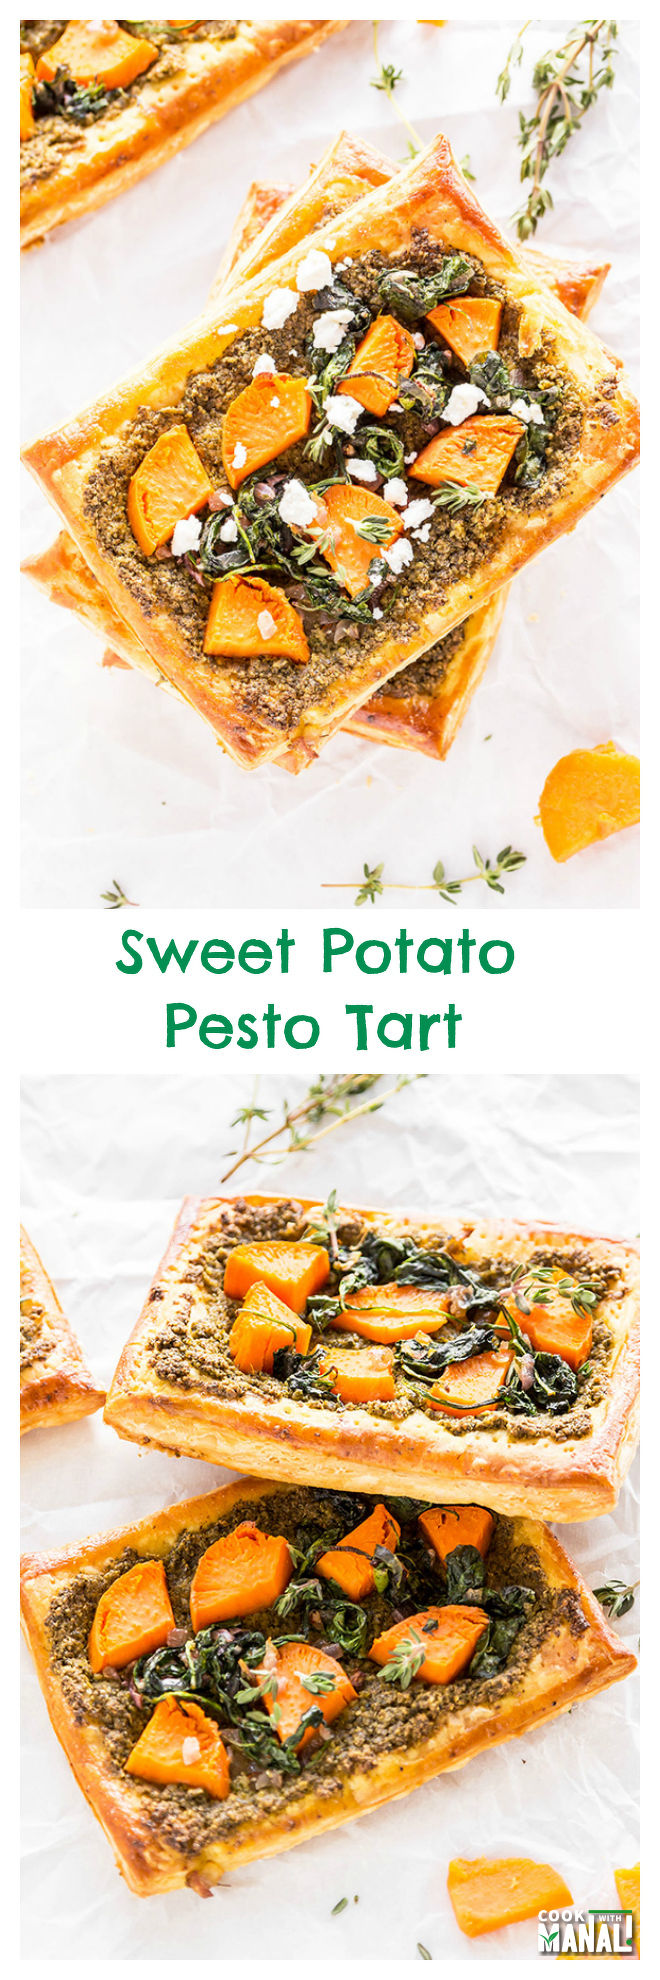 sweet-potato-pesto-tart-collage